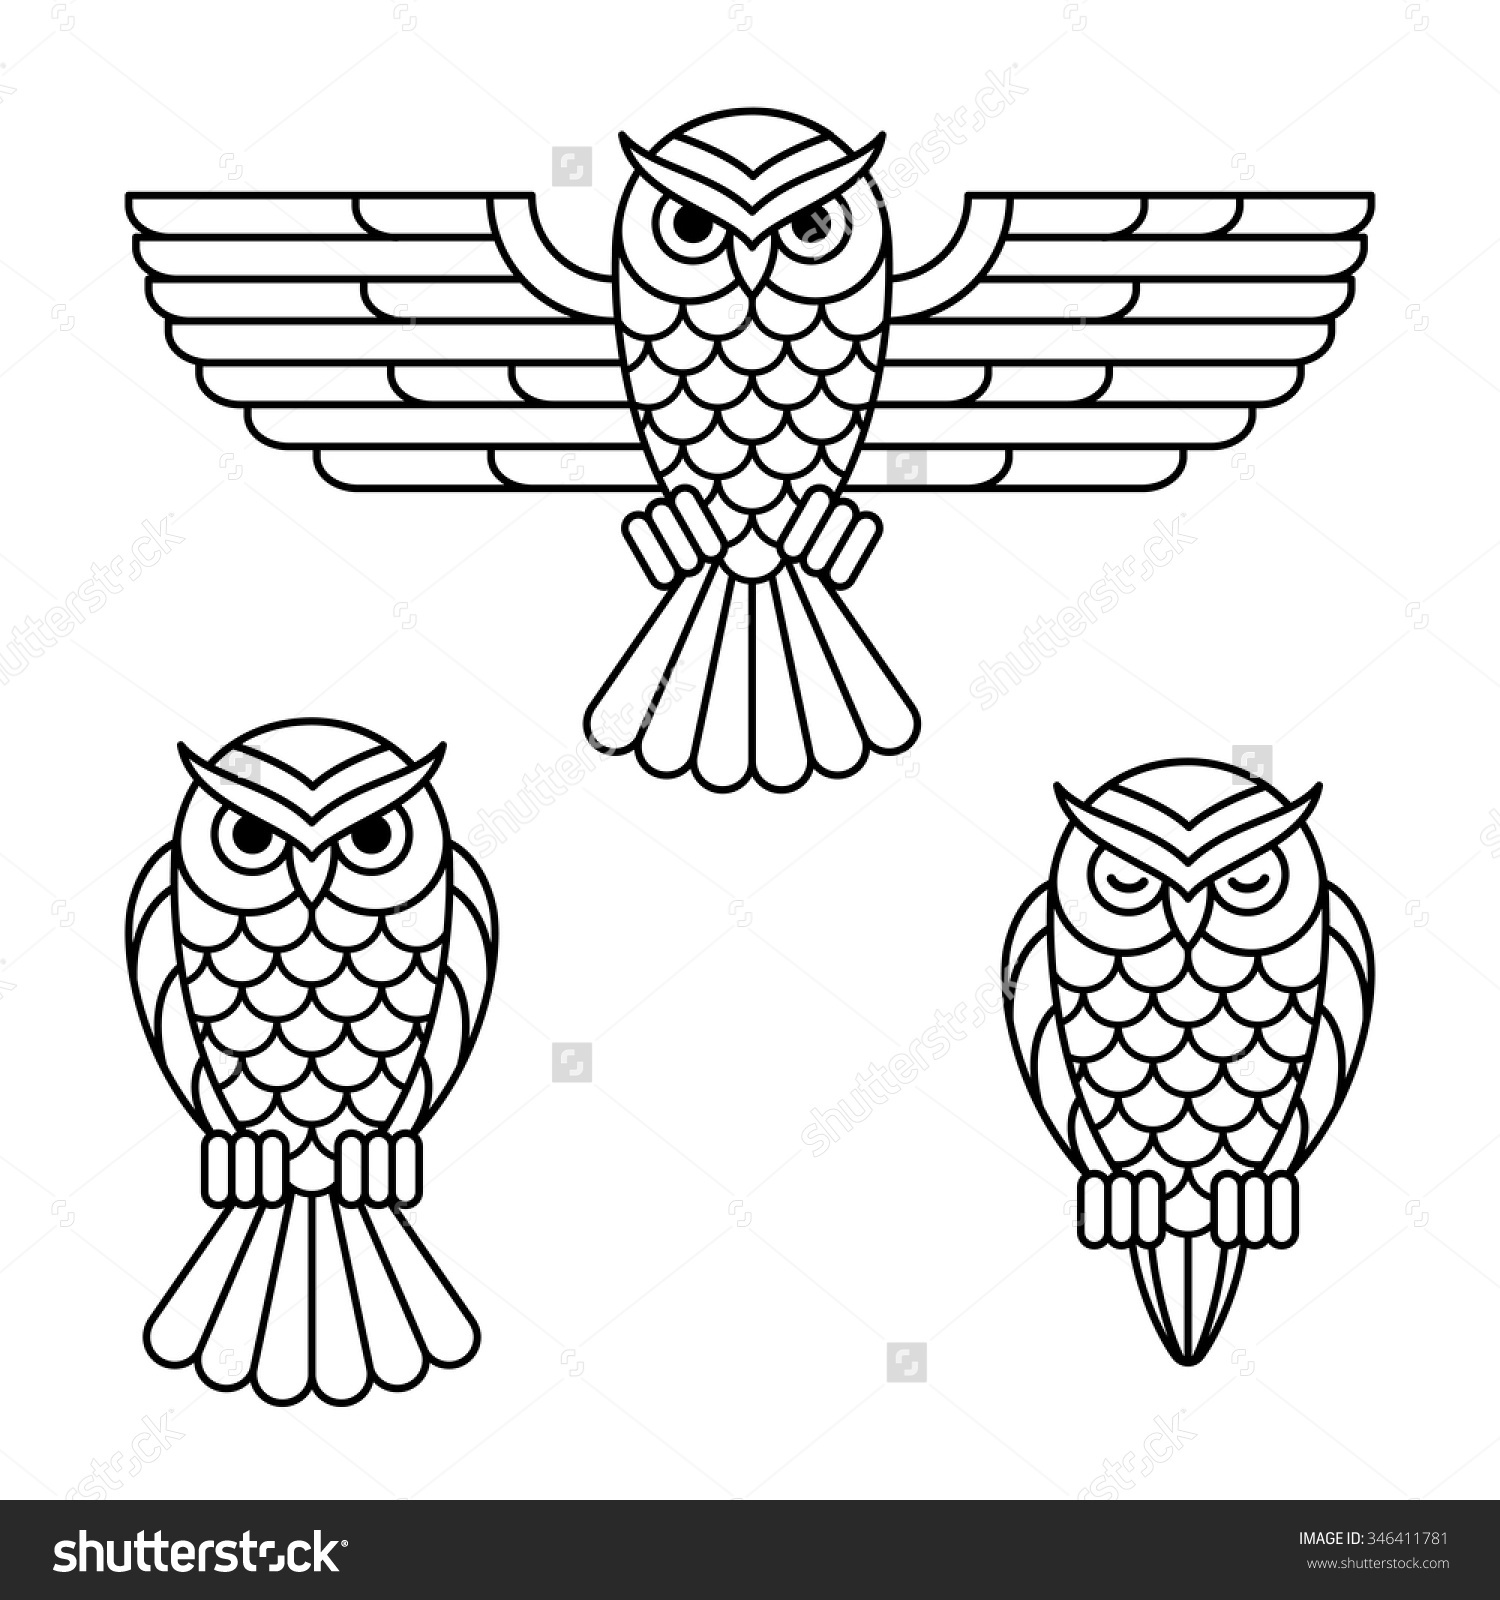 Owl Outline With Owl Clipart Outline : Owl Outline Outline.